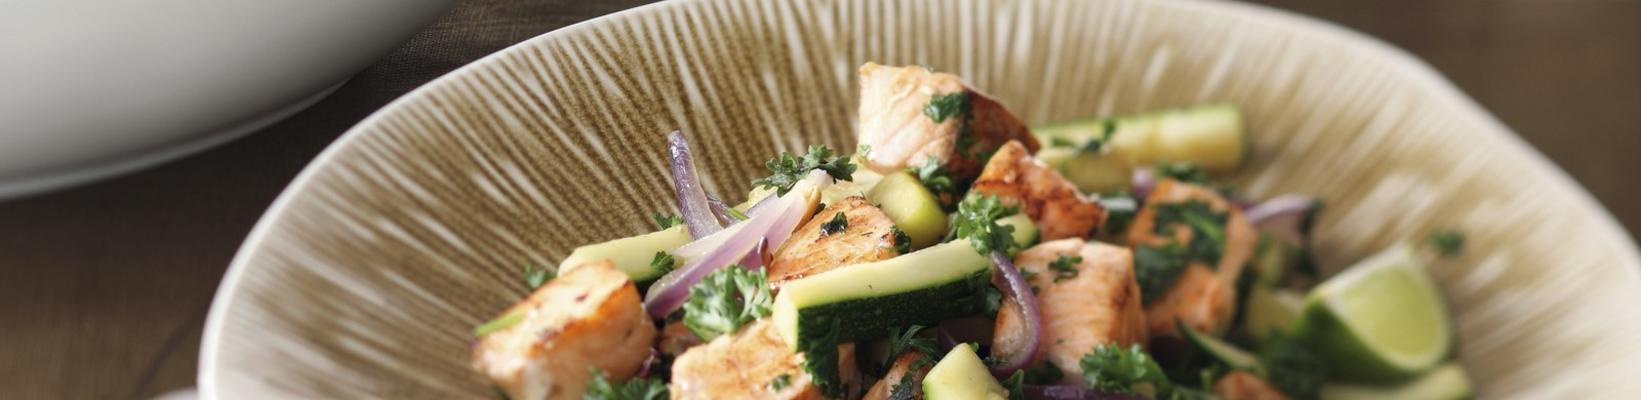 stir-fry dish with salmon and courgette potatoes